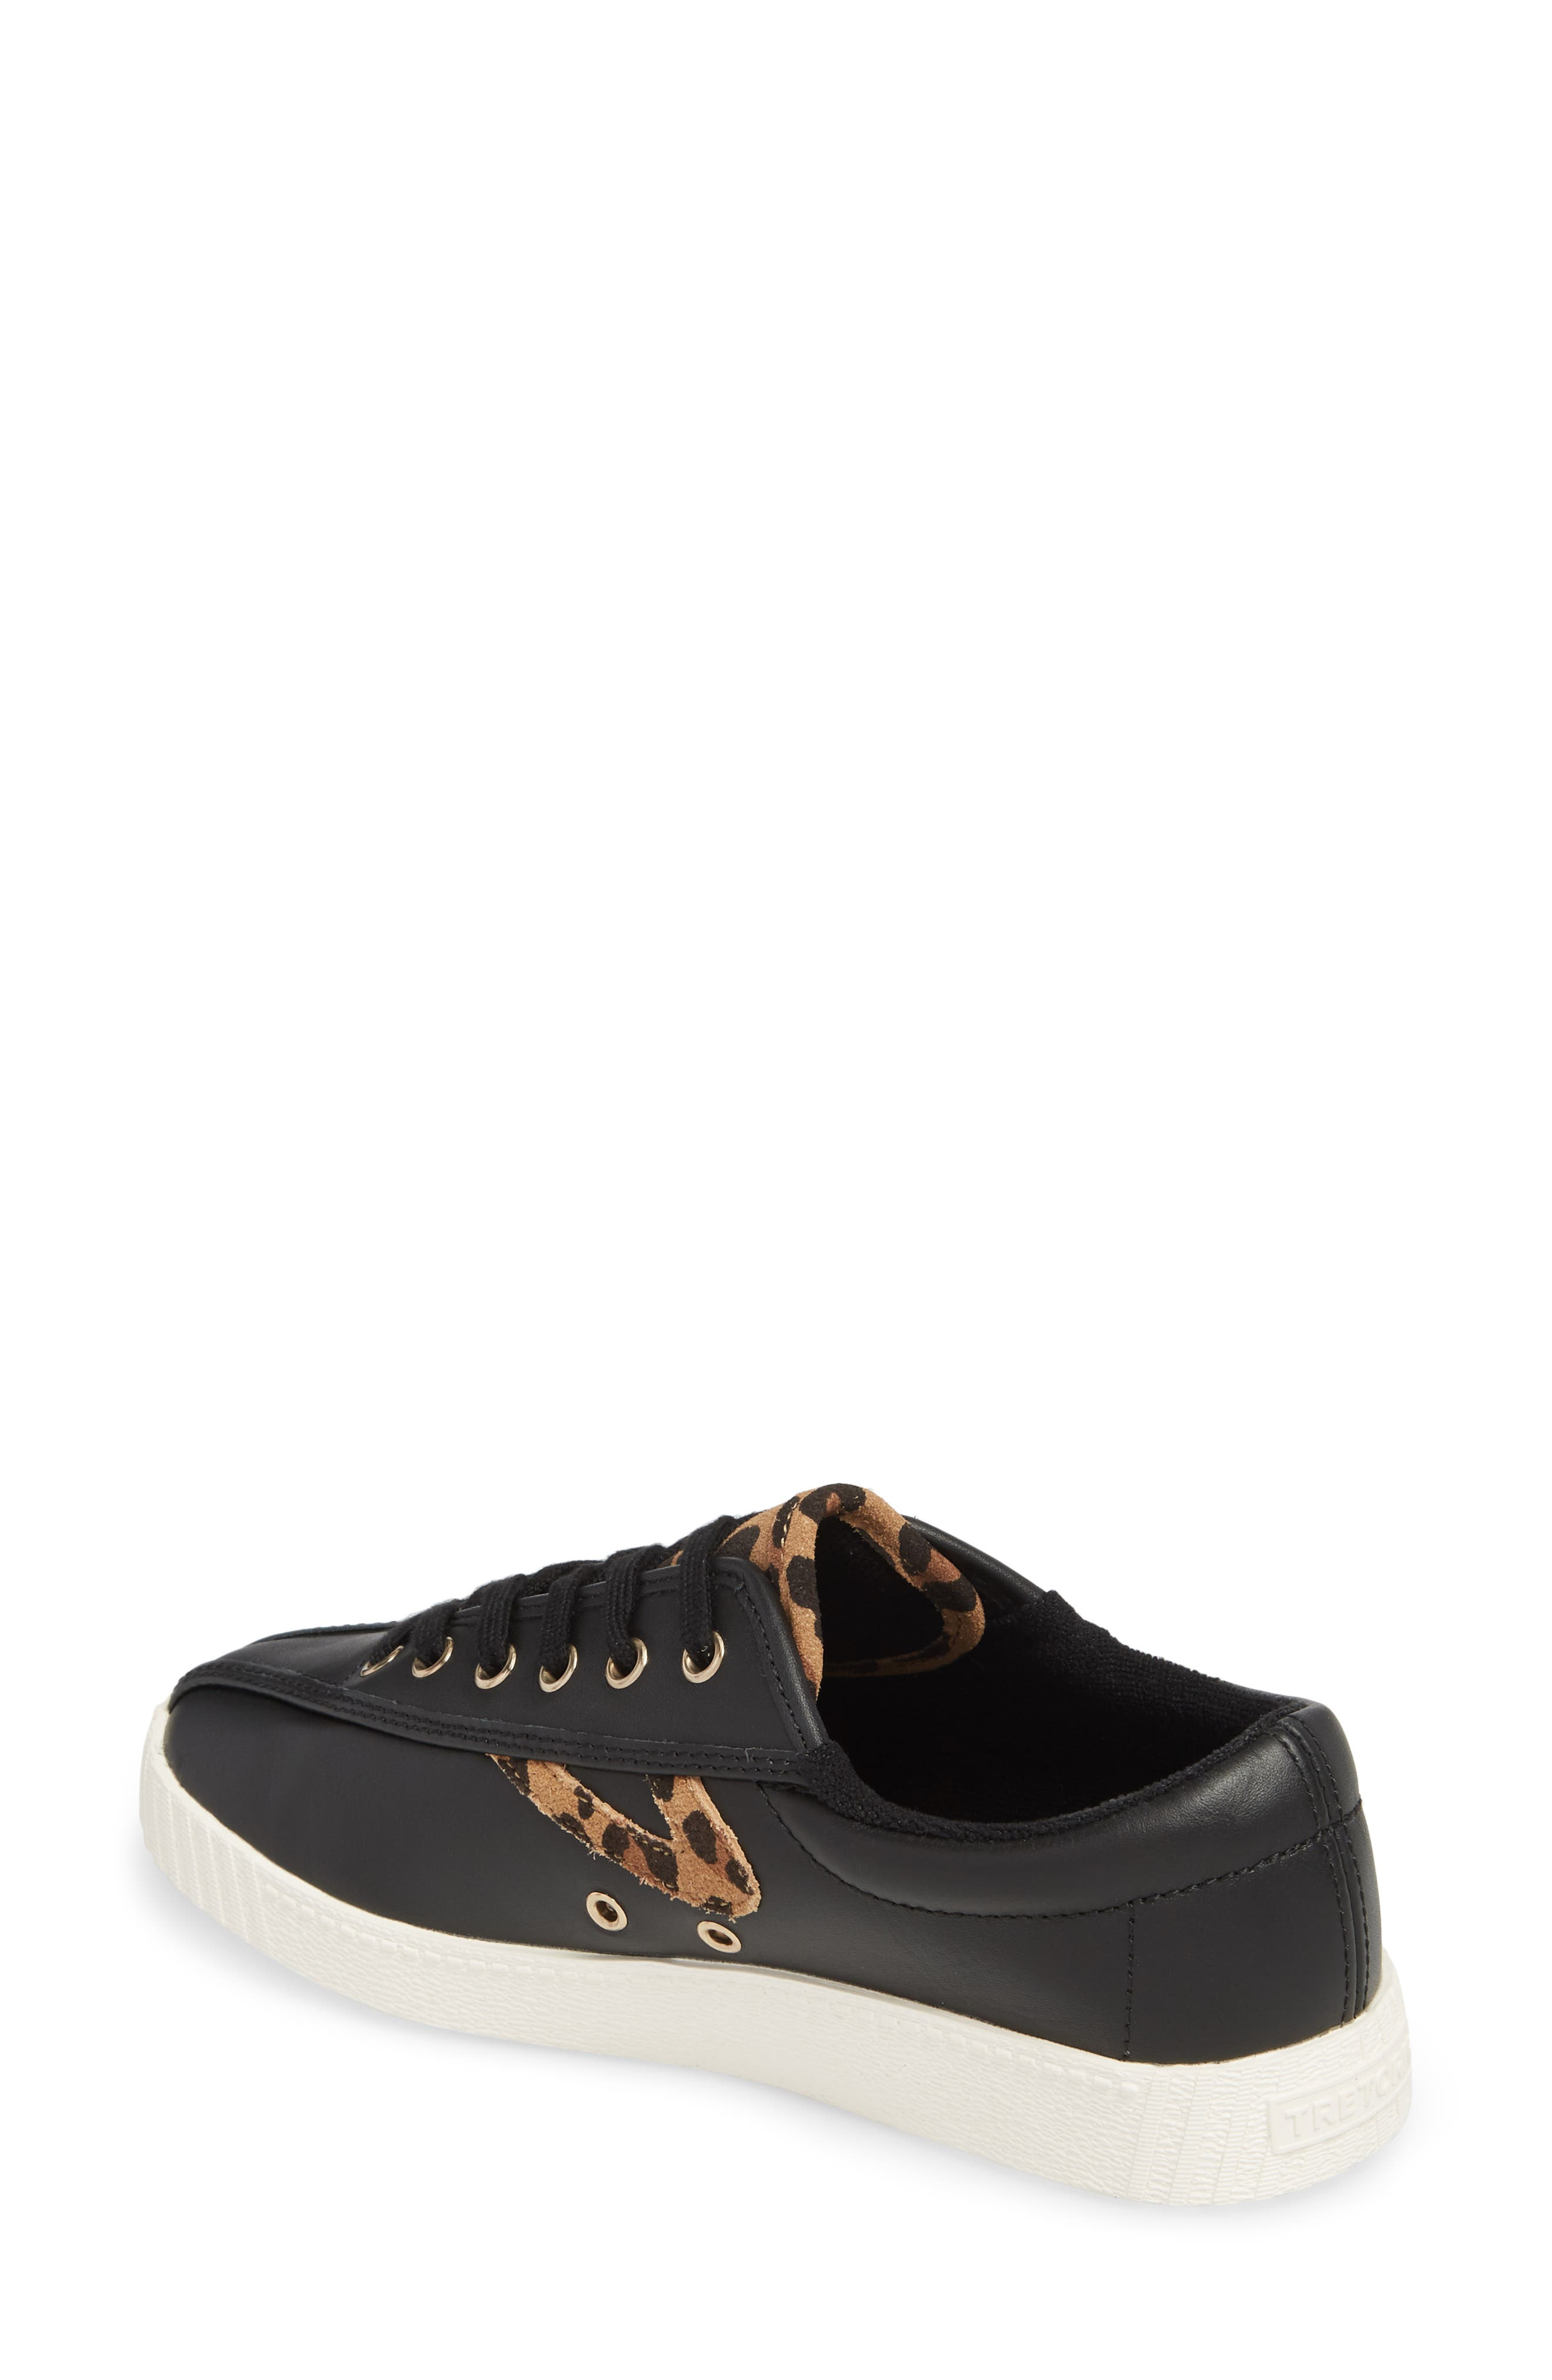 Patterned Sneaker,                             Alternate thumbnail 2, color,                             BLACK/ TAN/ BLACK LEATHER